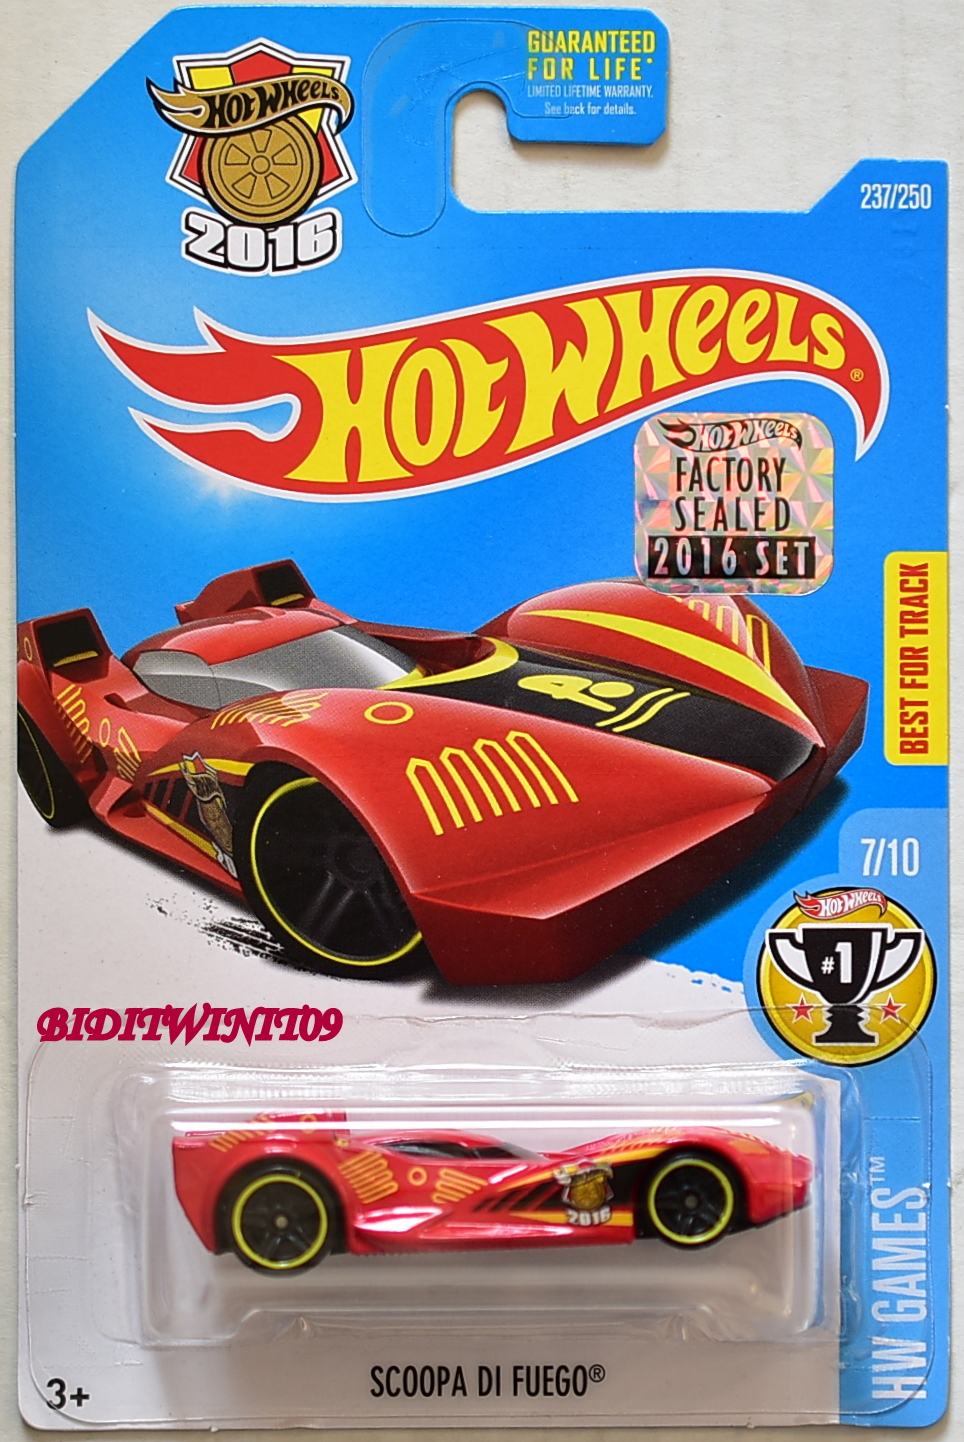 HOT WHEELS 2016 HW GAMES SCOOPA DI FUEGO RED FACTORY SEALED